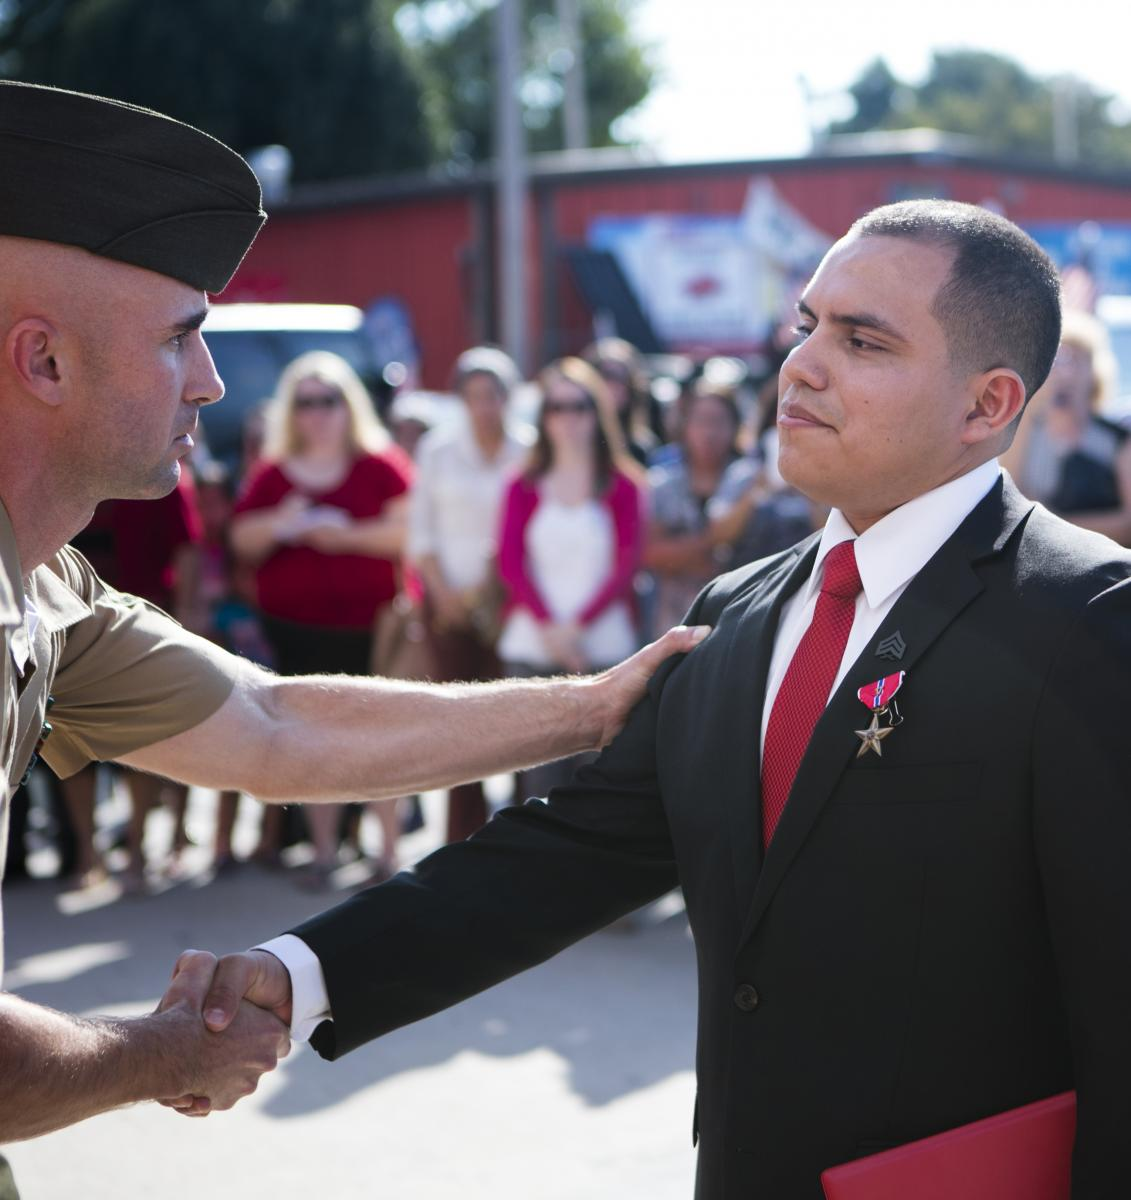 Veteran student shaking hands with officer